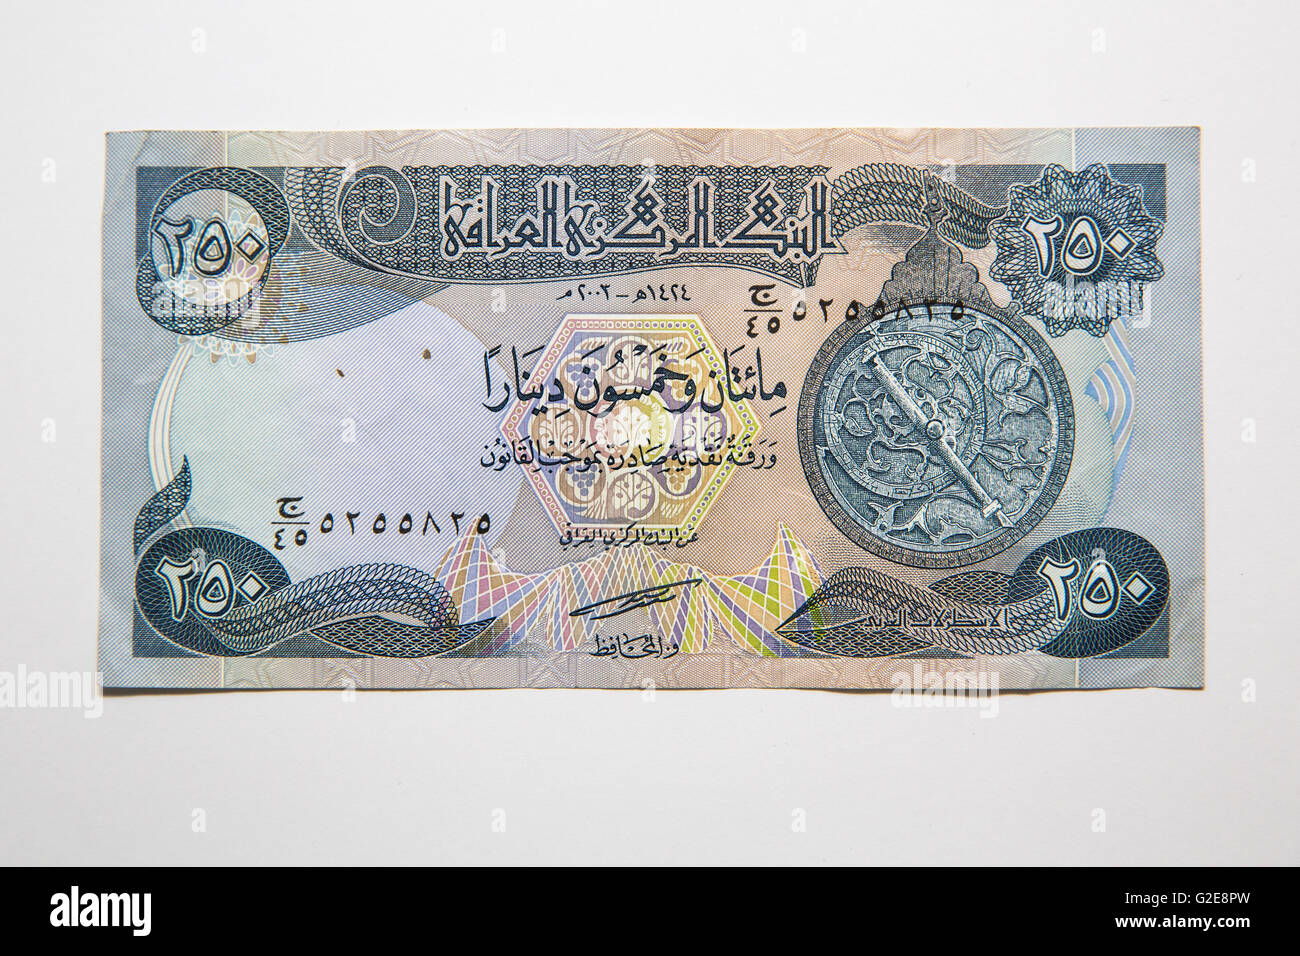 The front of the Iraq 250 Dinars note - Stock Image